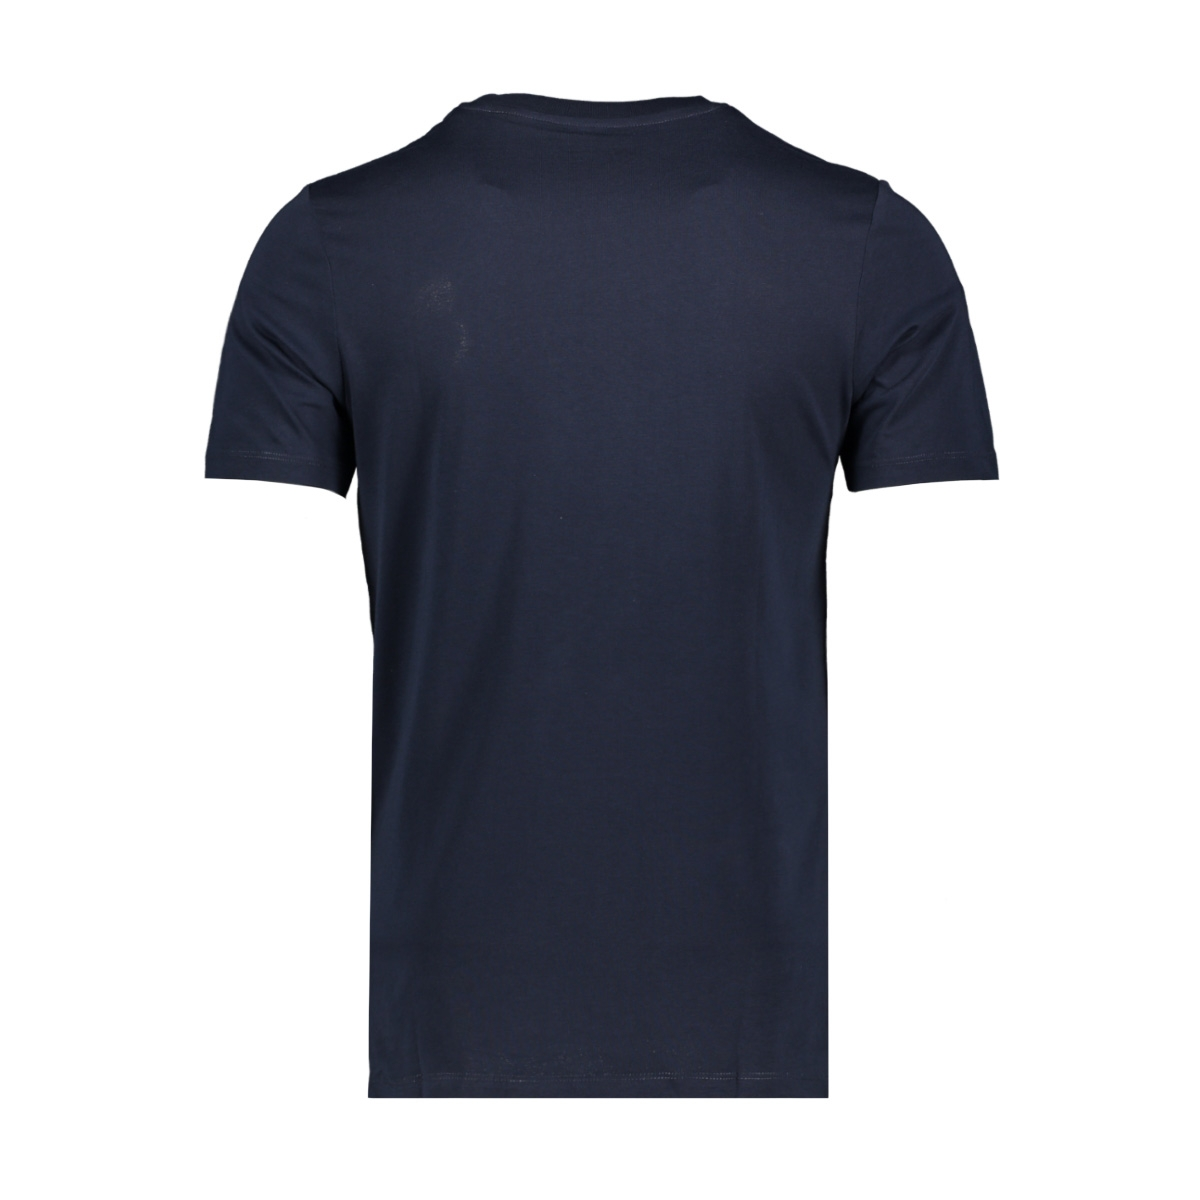 jcolazer tee  ss crew neck 12165656 jack & jones t-shirt sky captain